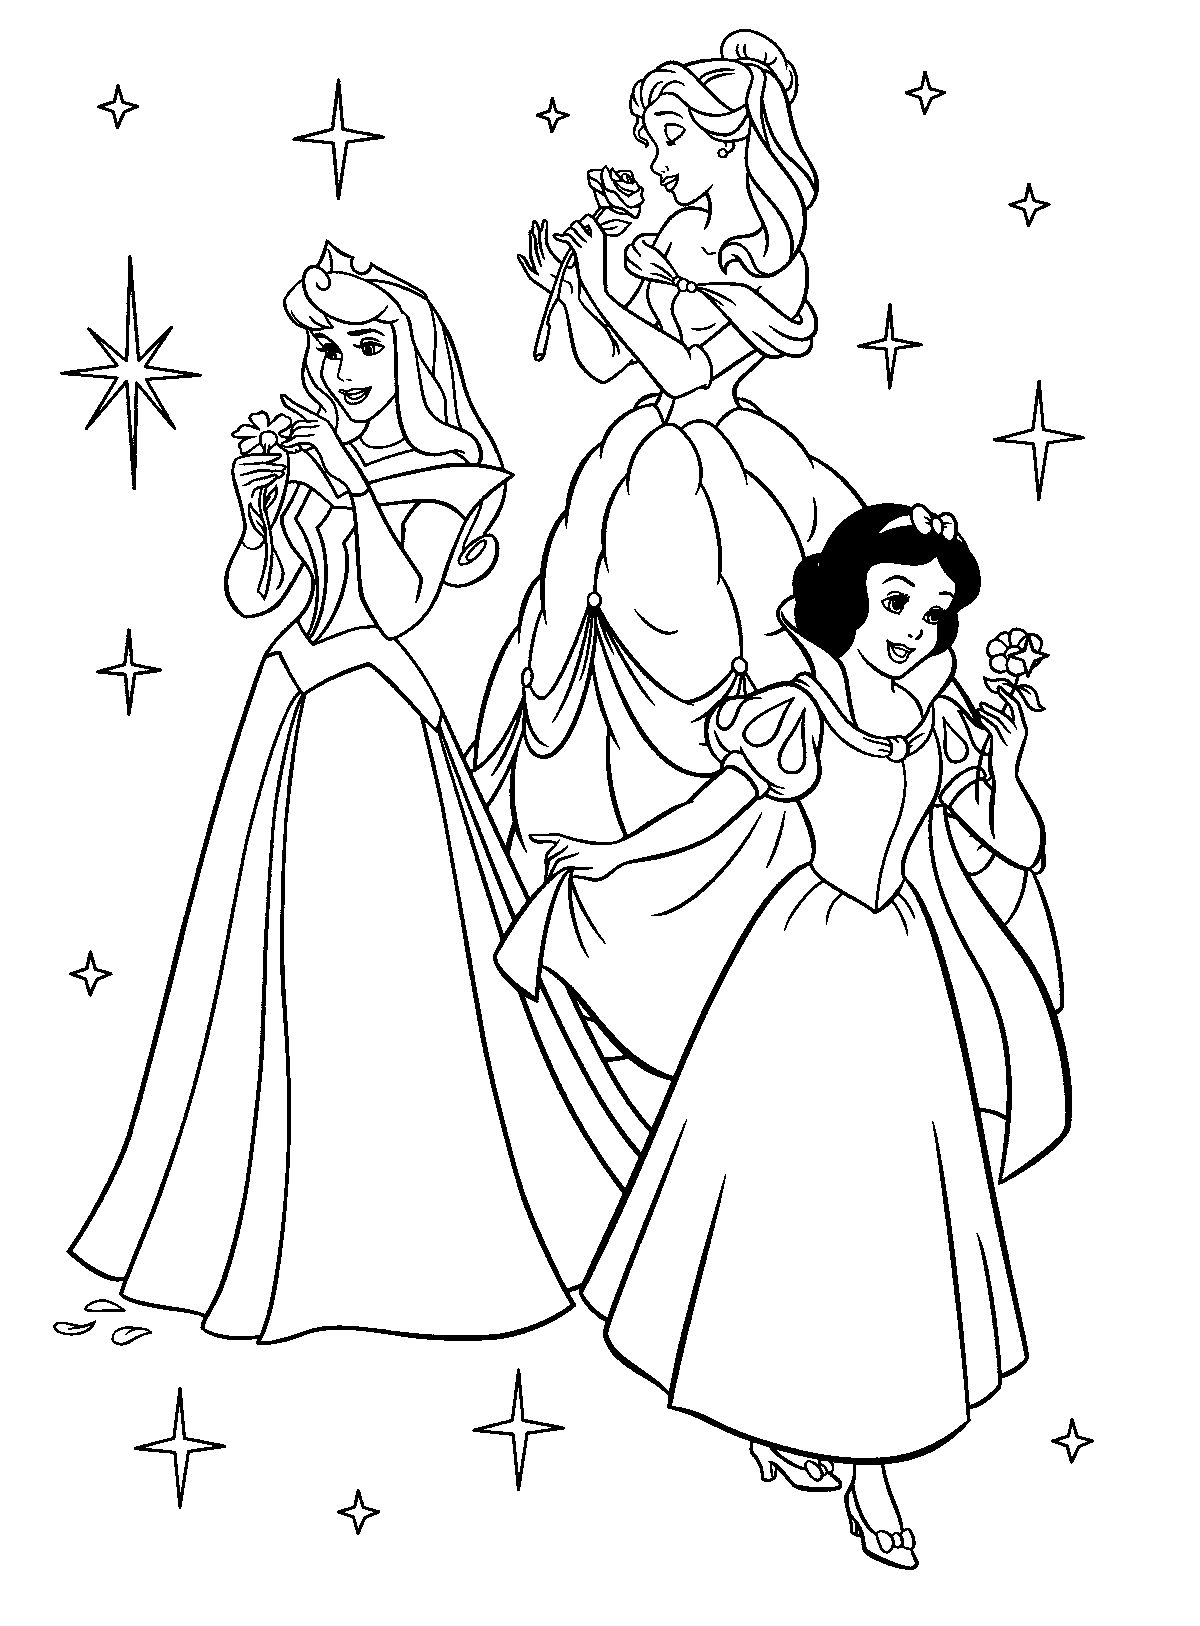 free disney princess coloring pages Free Printable Disney Princess Coloring Pages For Kids | Színezők  free disney princess coloring pages